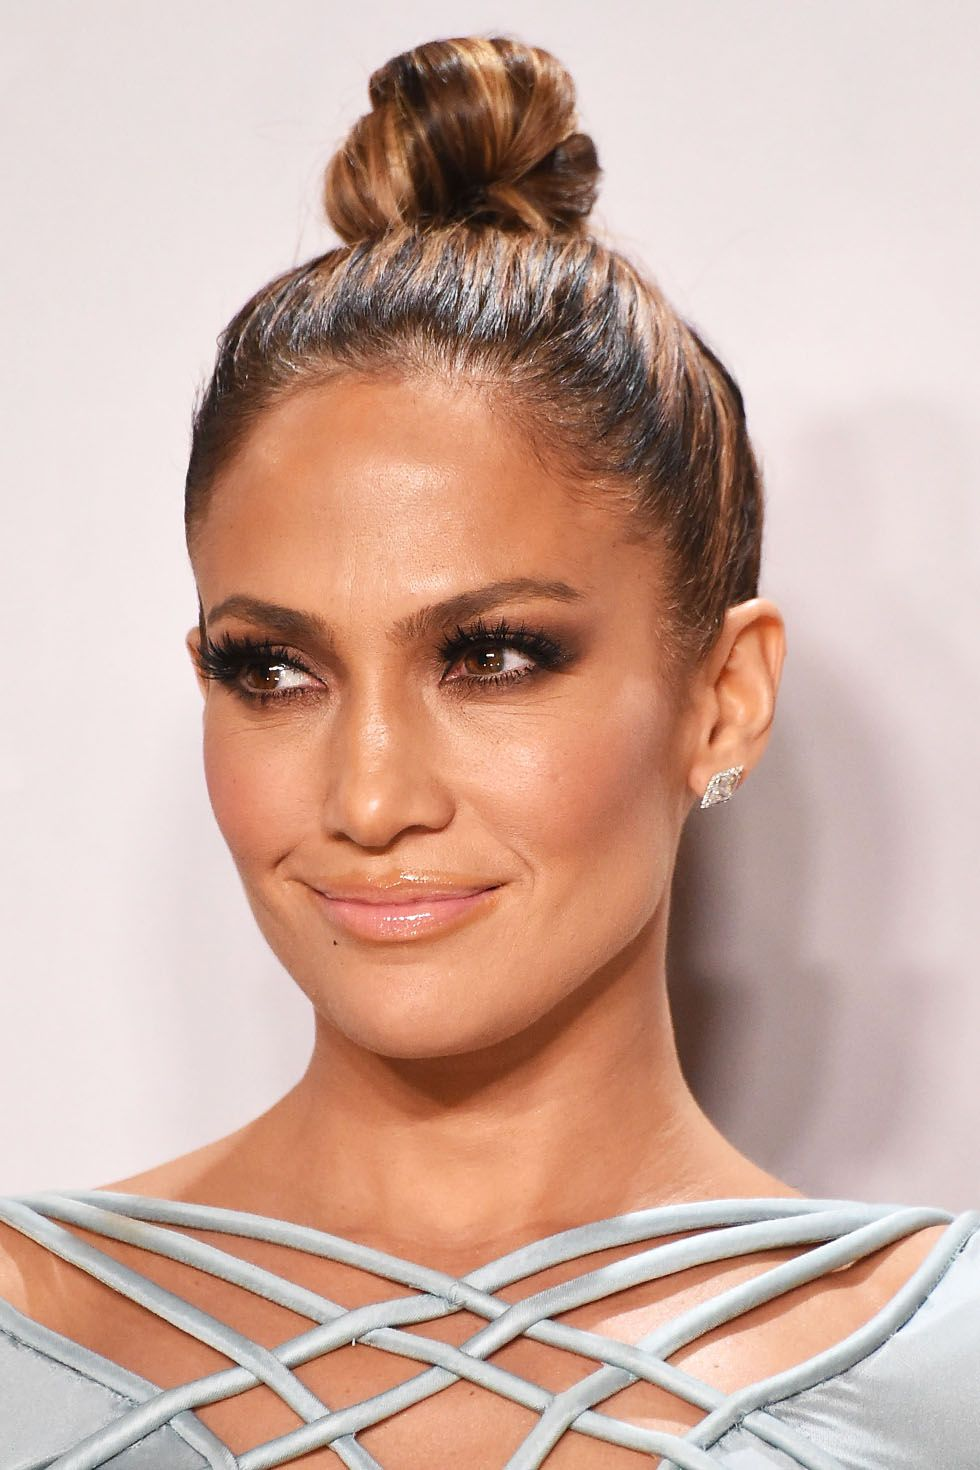 "<p>For <a href=""http://www.elle.com/beauty/a32853/jennifer-lopez-b..."" target=""_blank"">mega-lit cheekbones</a>, blend L'Oréal Paris True Match Lumi Liquid Glow Illuminator in Ice and Rose along cheekbones and temples, down the bridge of the nose, over the cupid's bow, and beneath the brow bone. <br></p>"